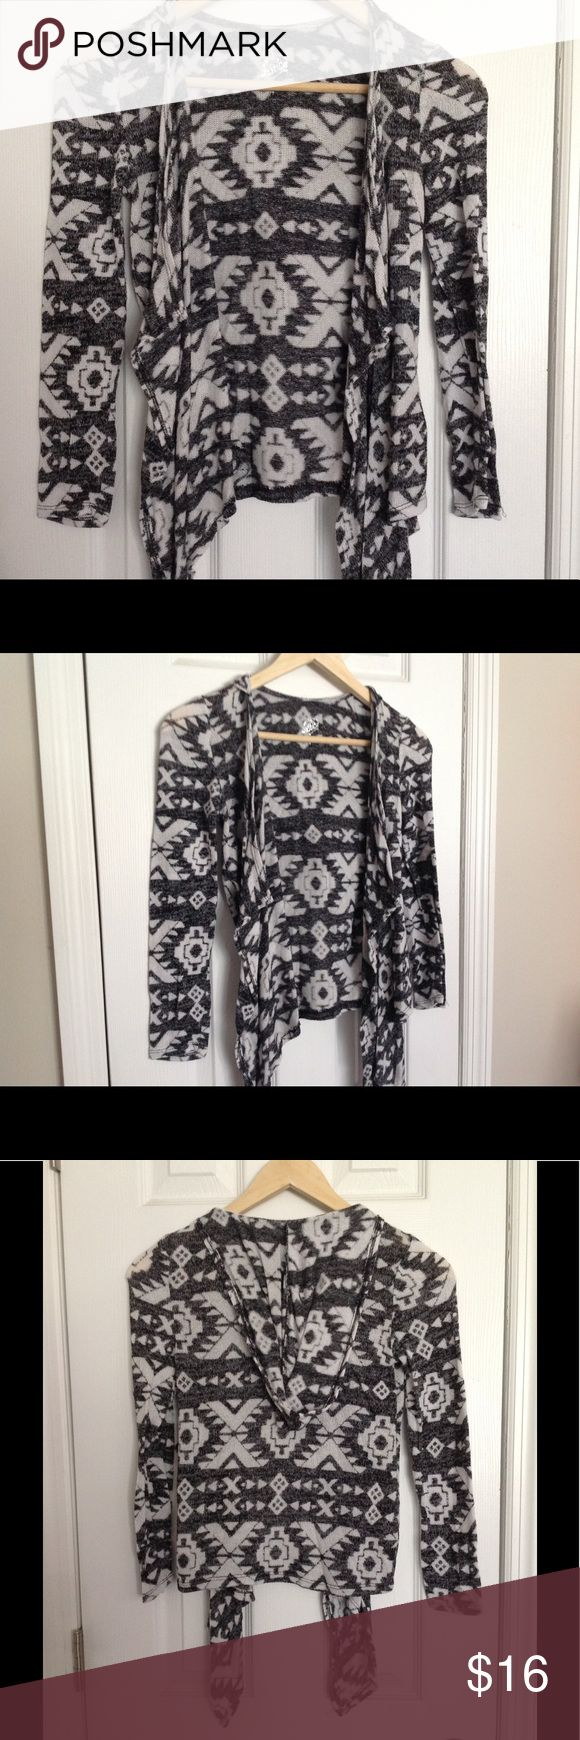 Girl's JUSTICE Aztec print Cardigan Sweater size 8 Girl's Aztec print, lightweight hooded cardigan in Grey + White, size 8. Sweater has never been worn and is in new condition. Willing to consider reasonable OFFERS! Justice Shirts & Tops Sweaters